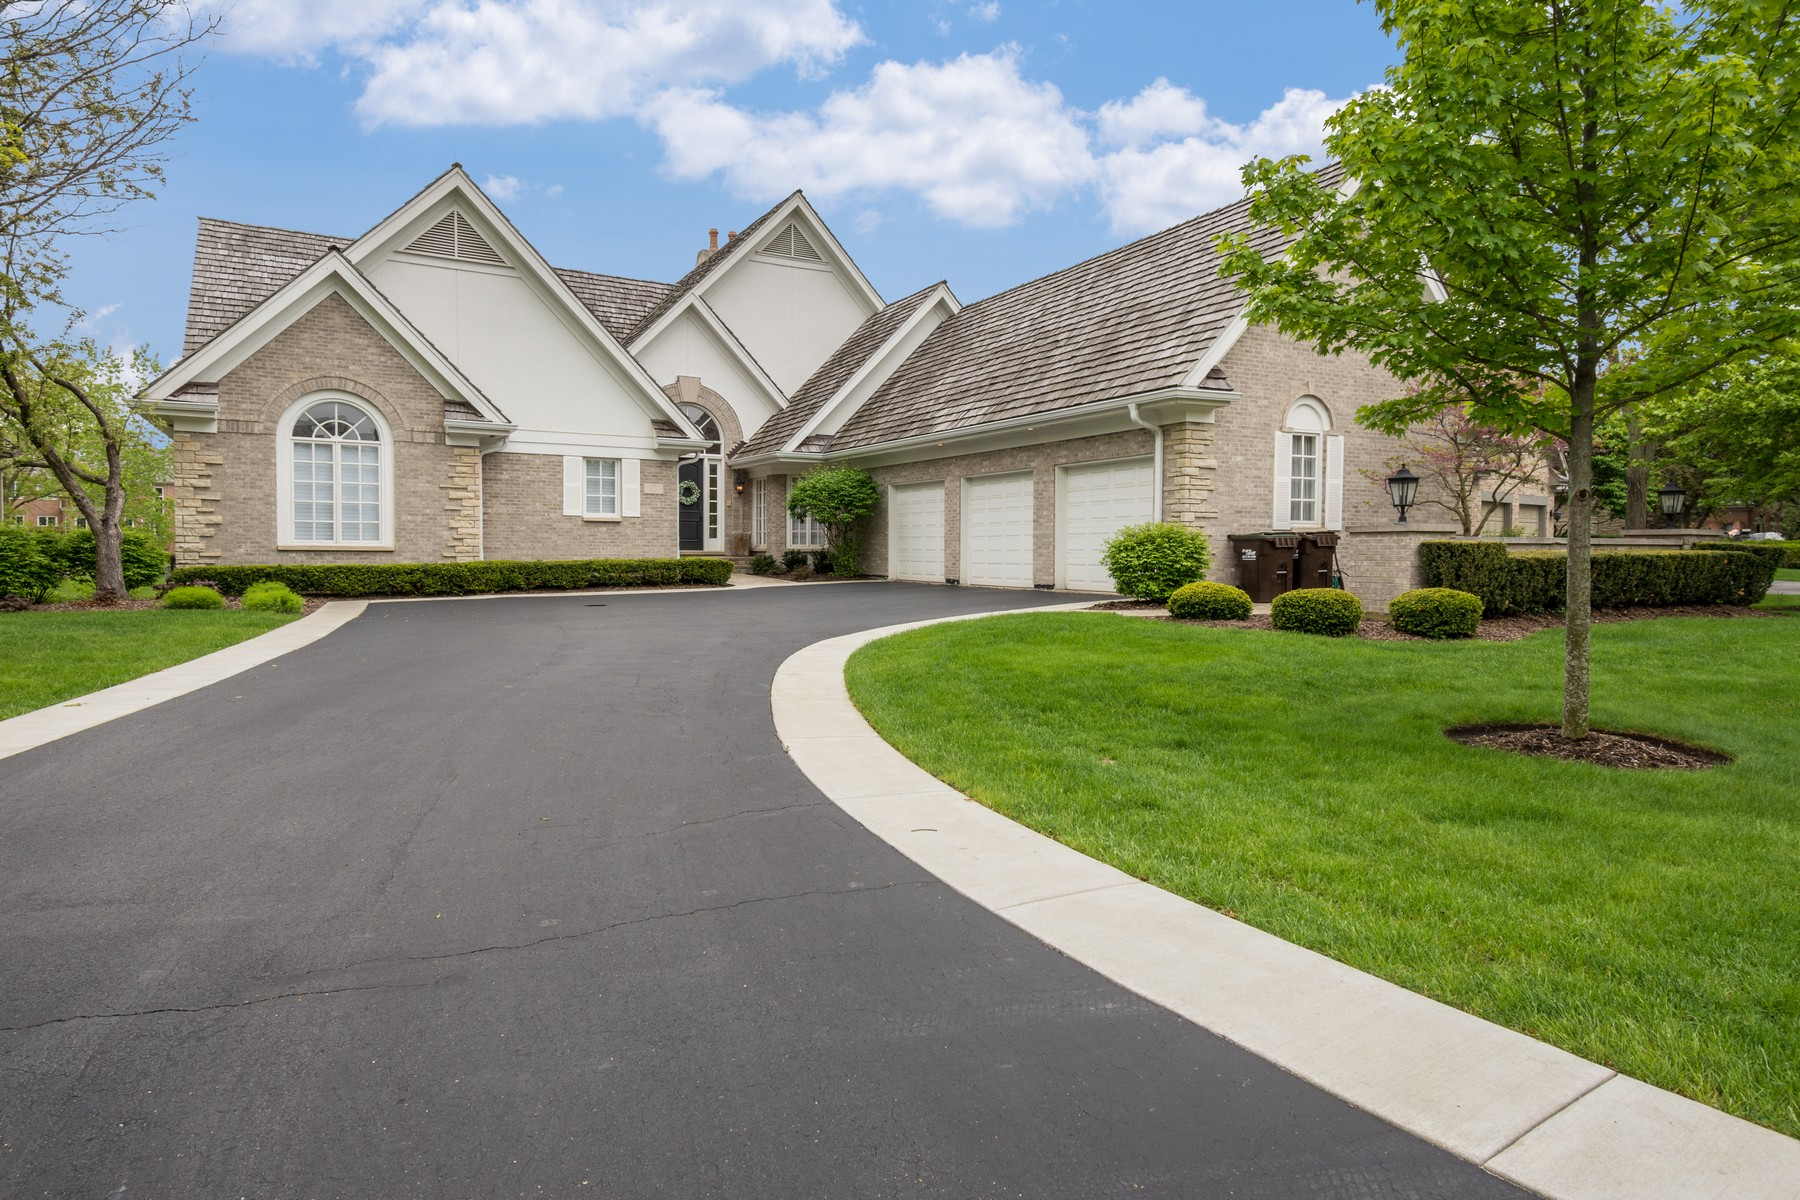 Single Family Homes for Active at Totally Transformed Masterpiece 101 Lakeside Court North Barrington, Illinois 60010 United States